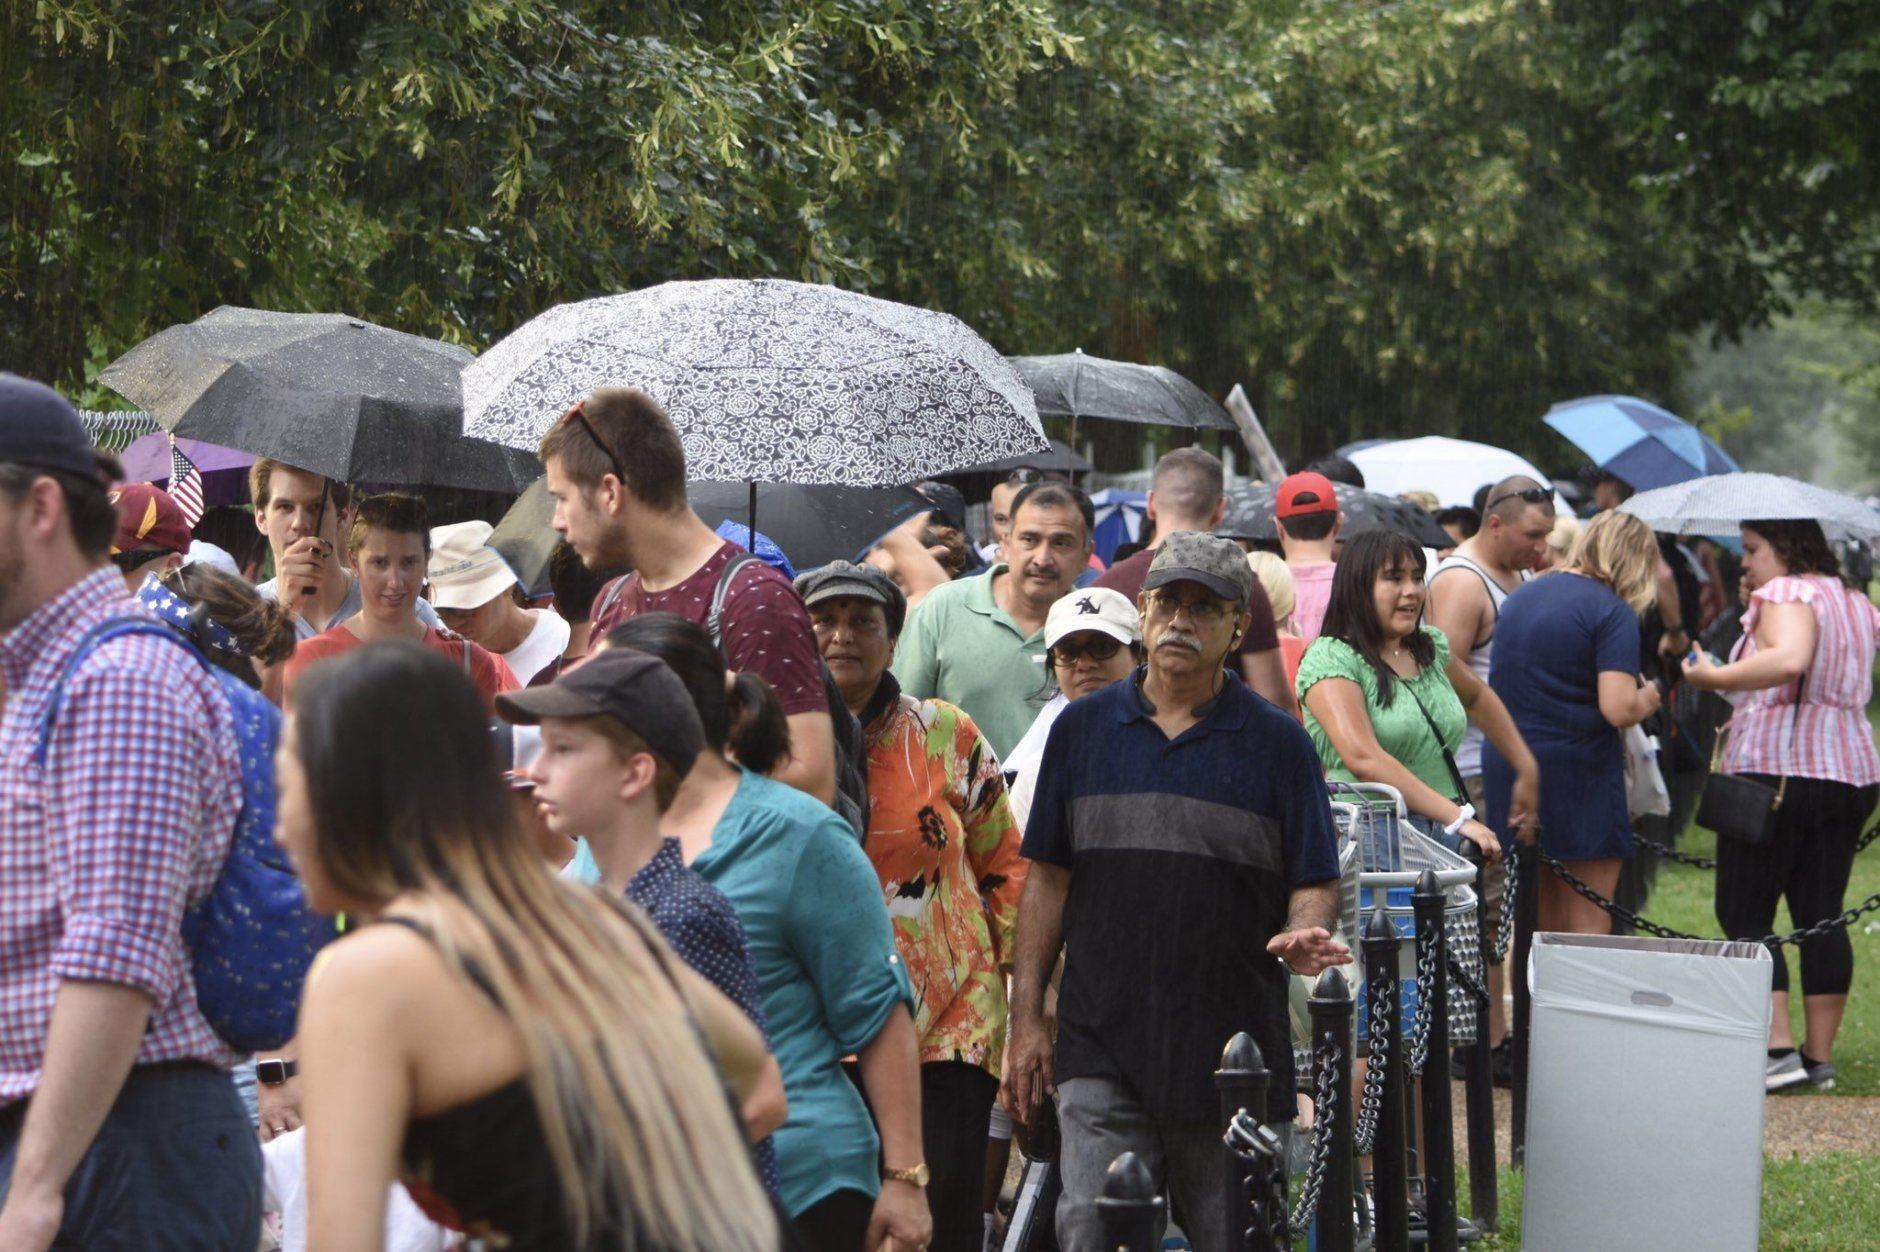 Umbrellas come out at the 20th Street/Constitution Avenue checkpoint near the National Mall on Thursday, July 4, 2019. (WTOP/Dave Dildine)